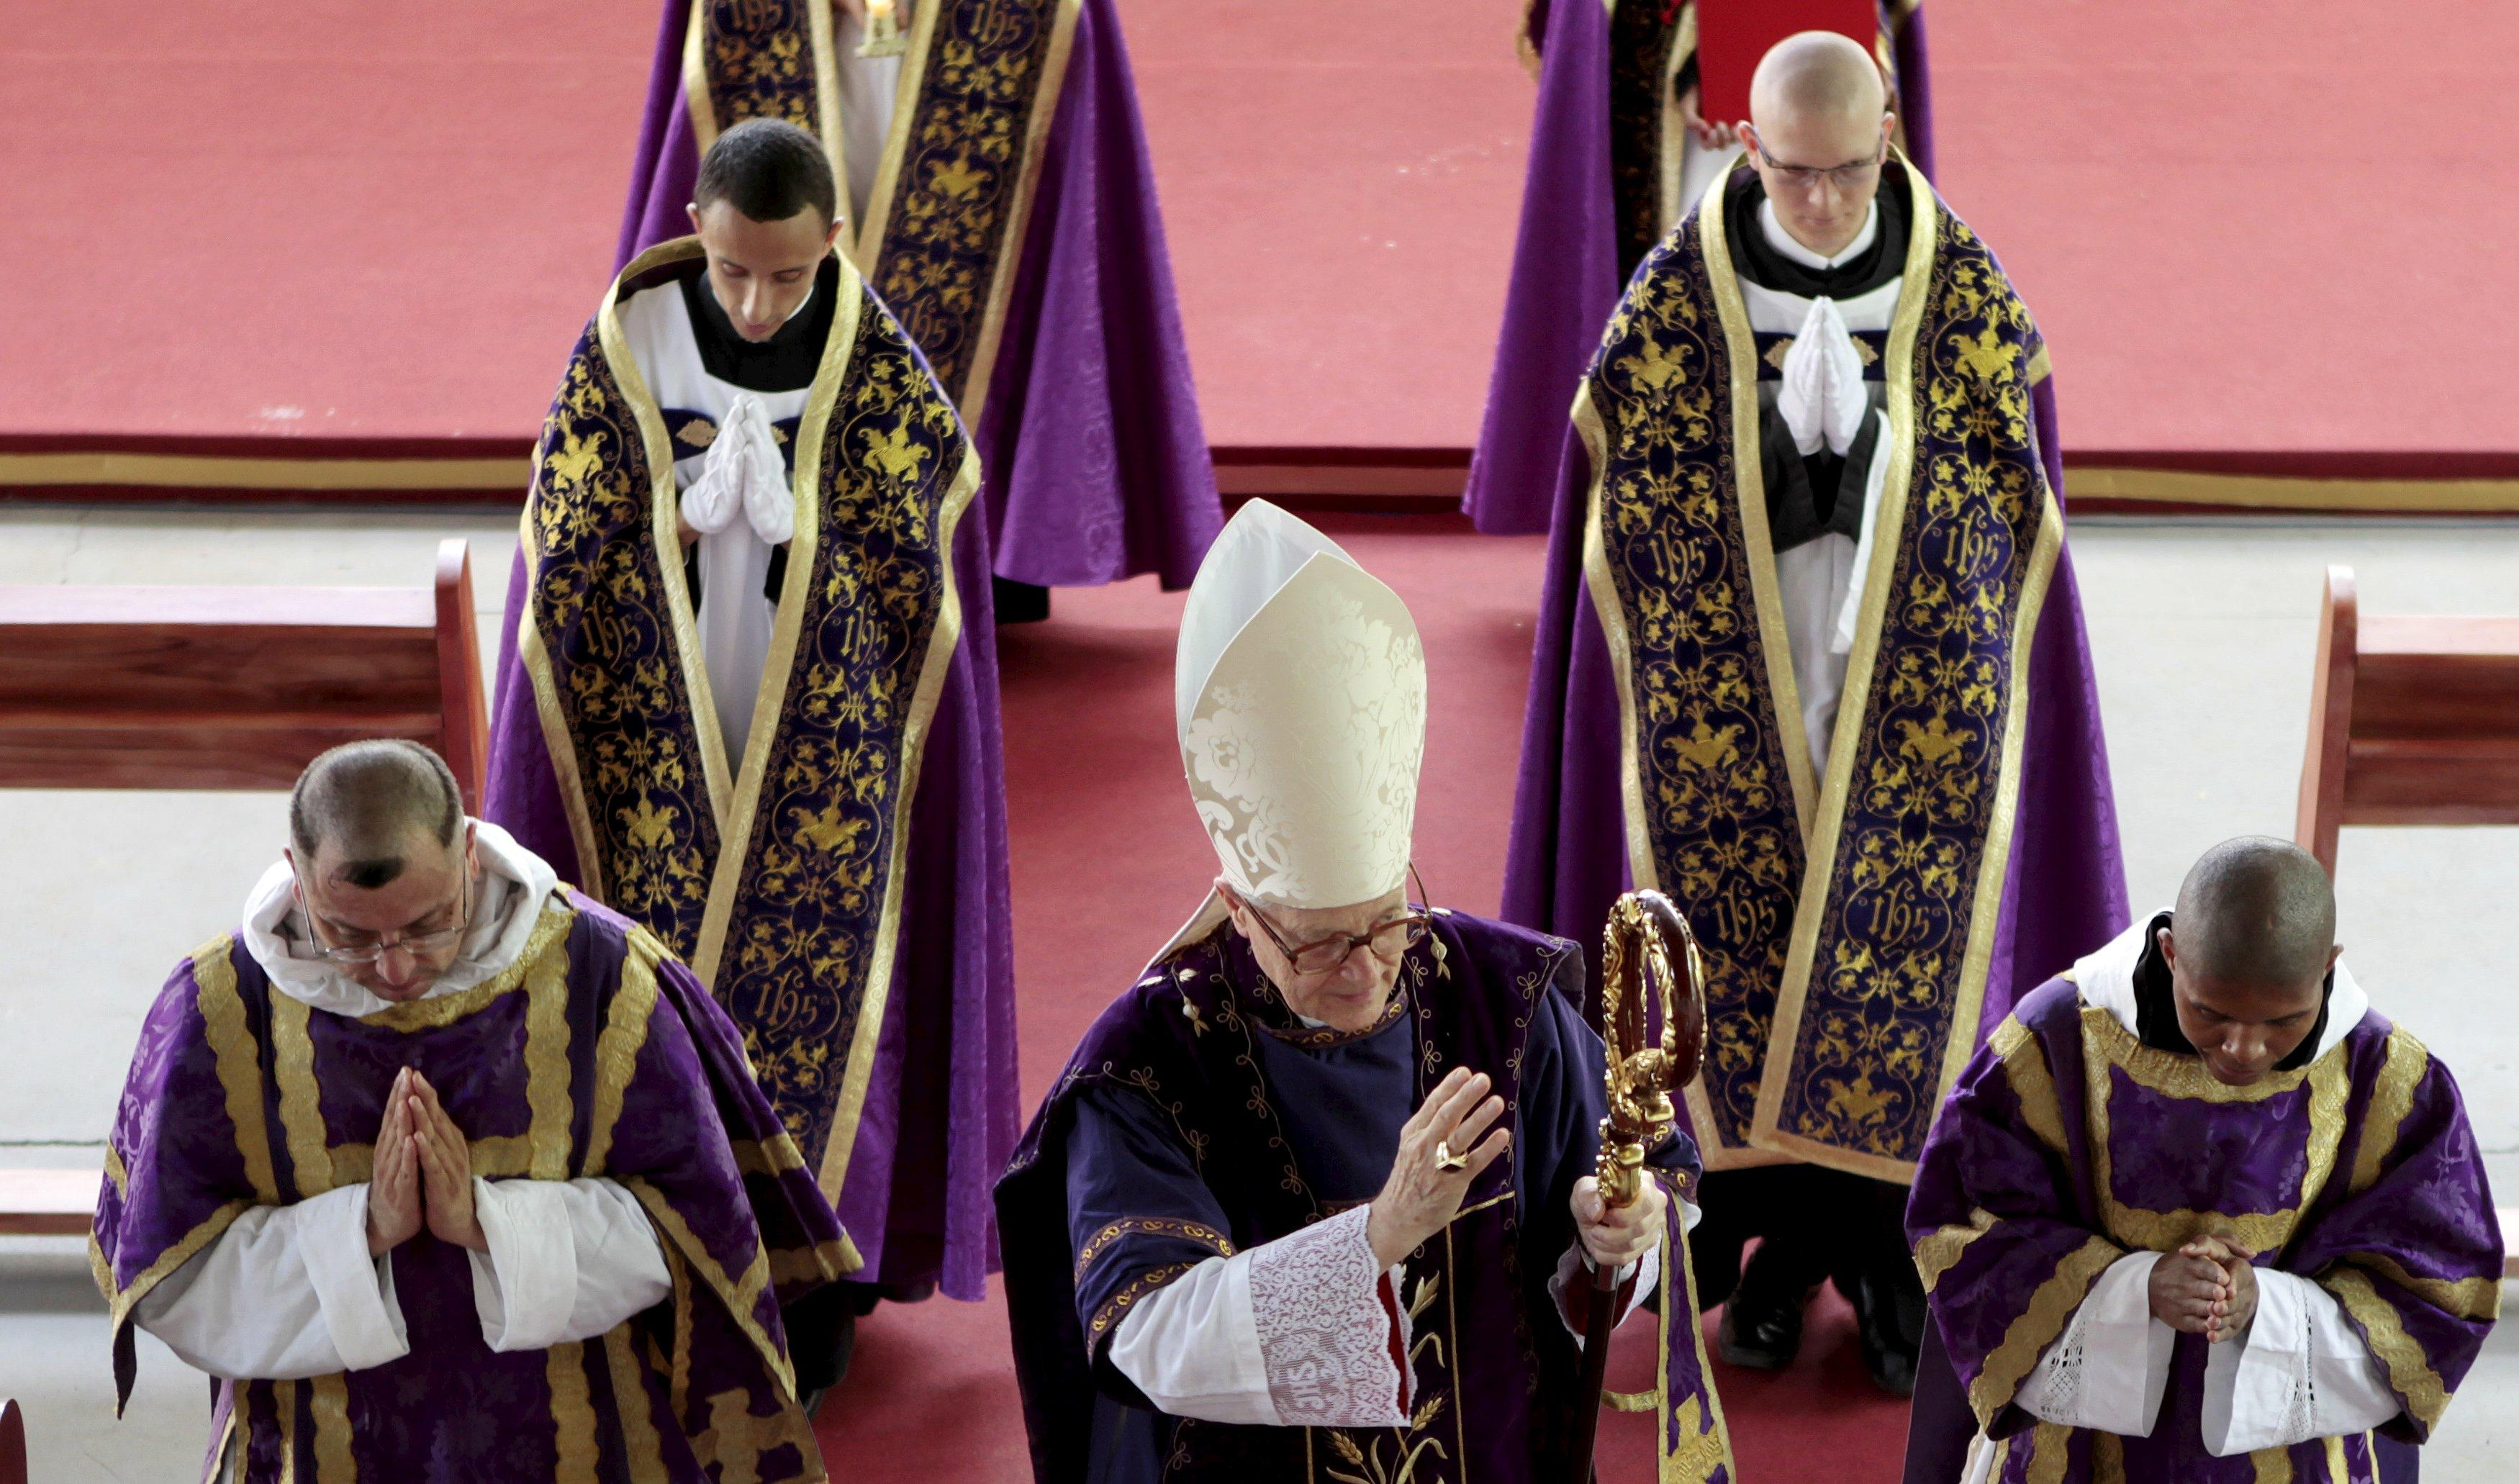 Rogue Catholic bishops plan to grow schismatic challenge to Rome